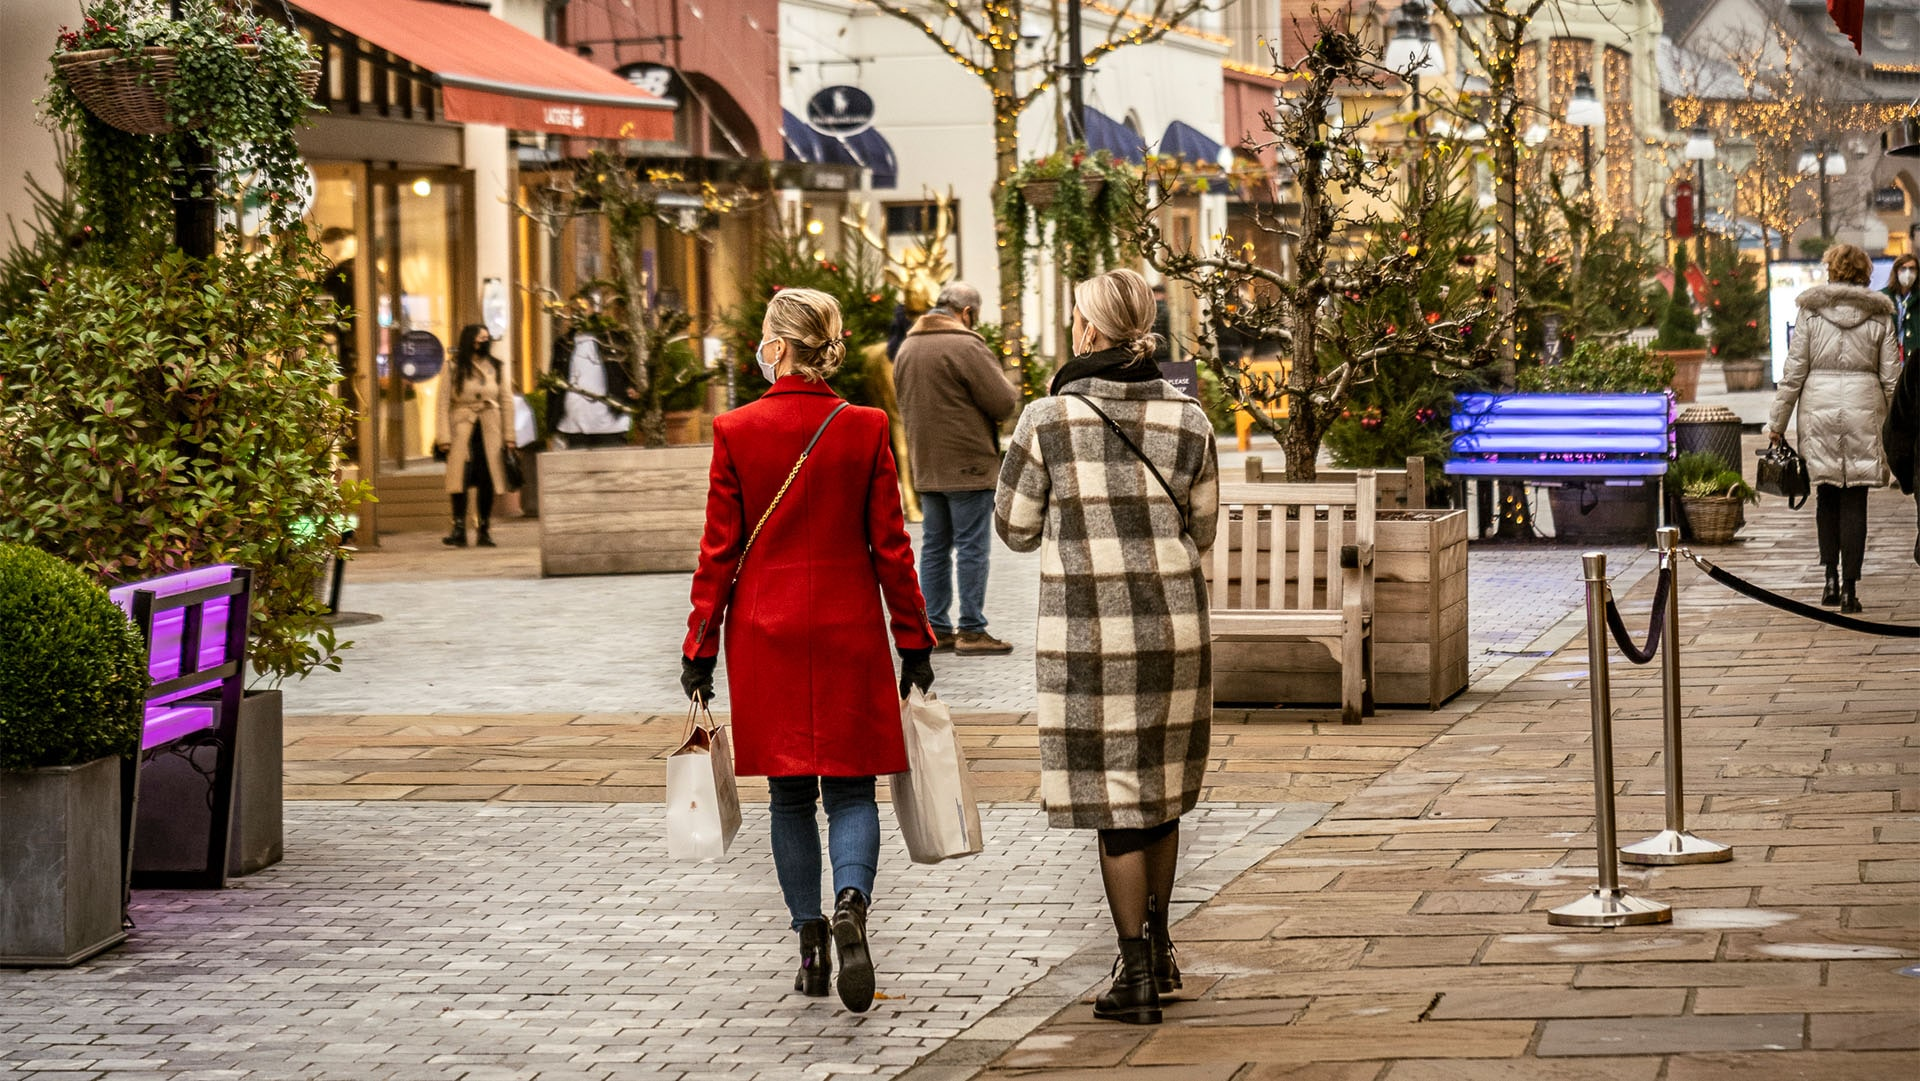 Maasmechelen Village outlet shopping open on Sunday